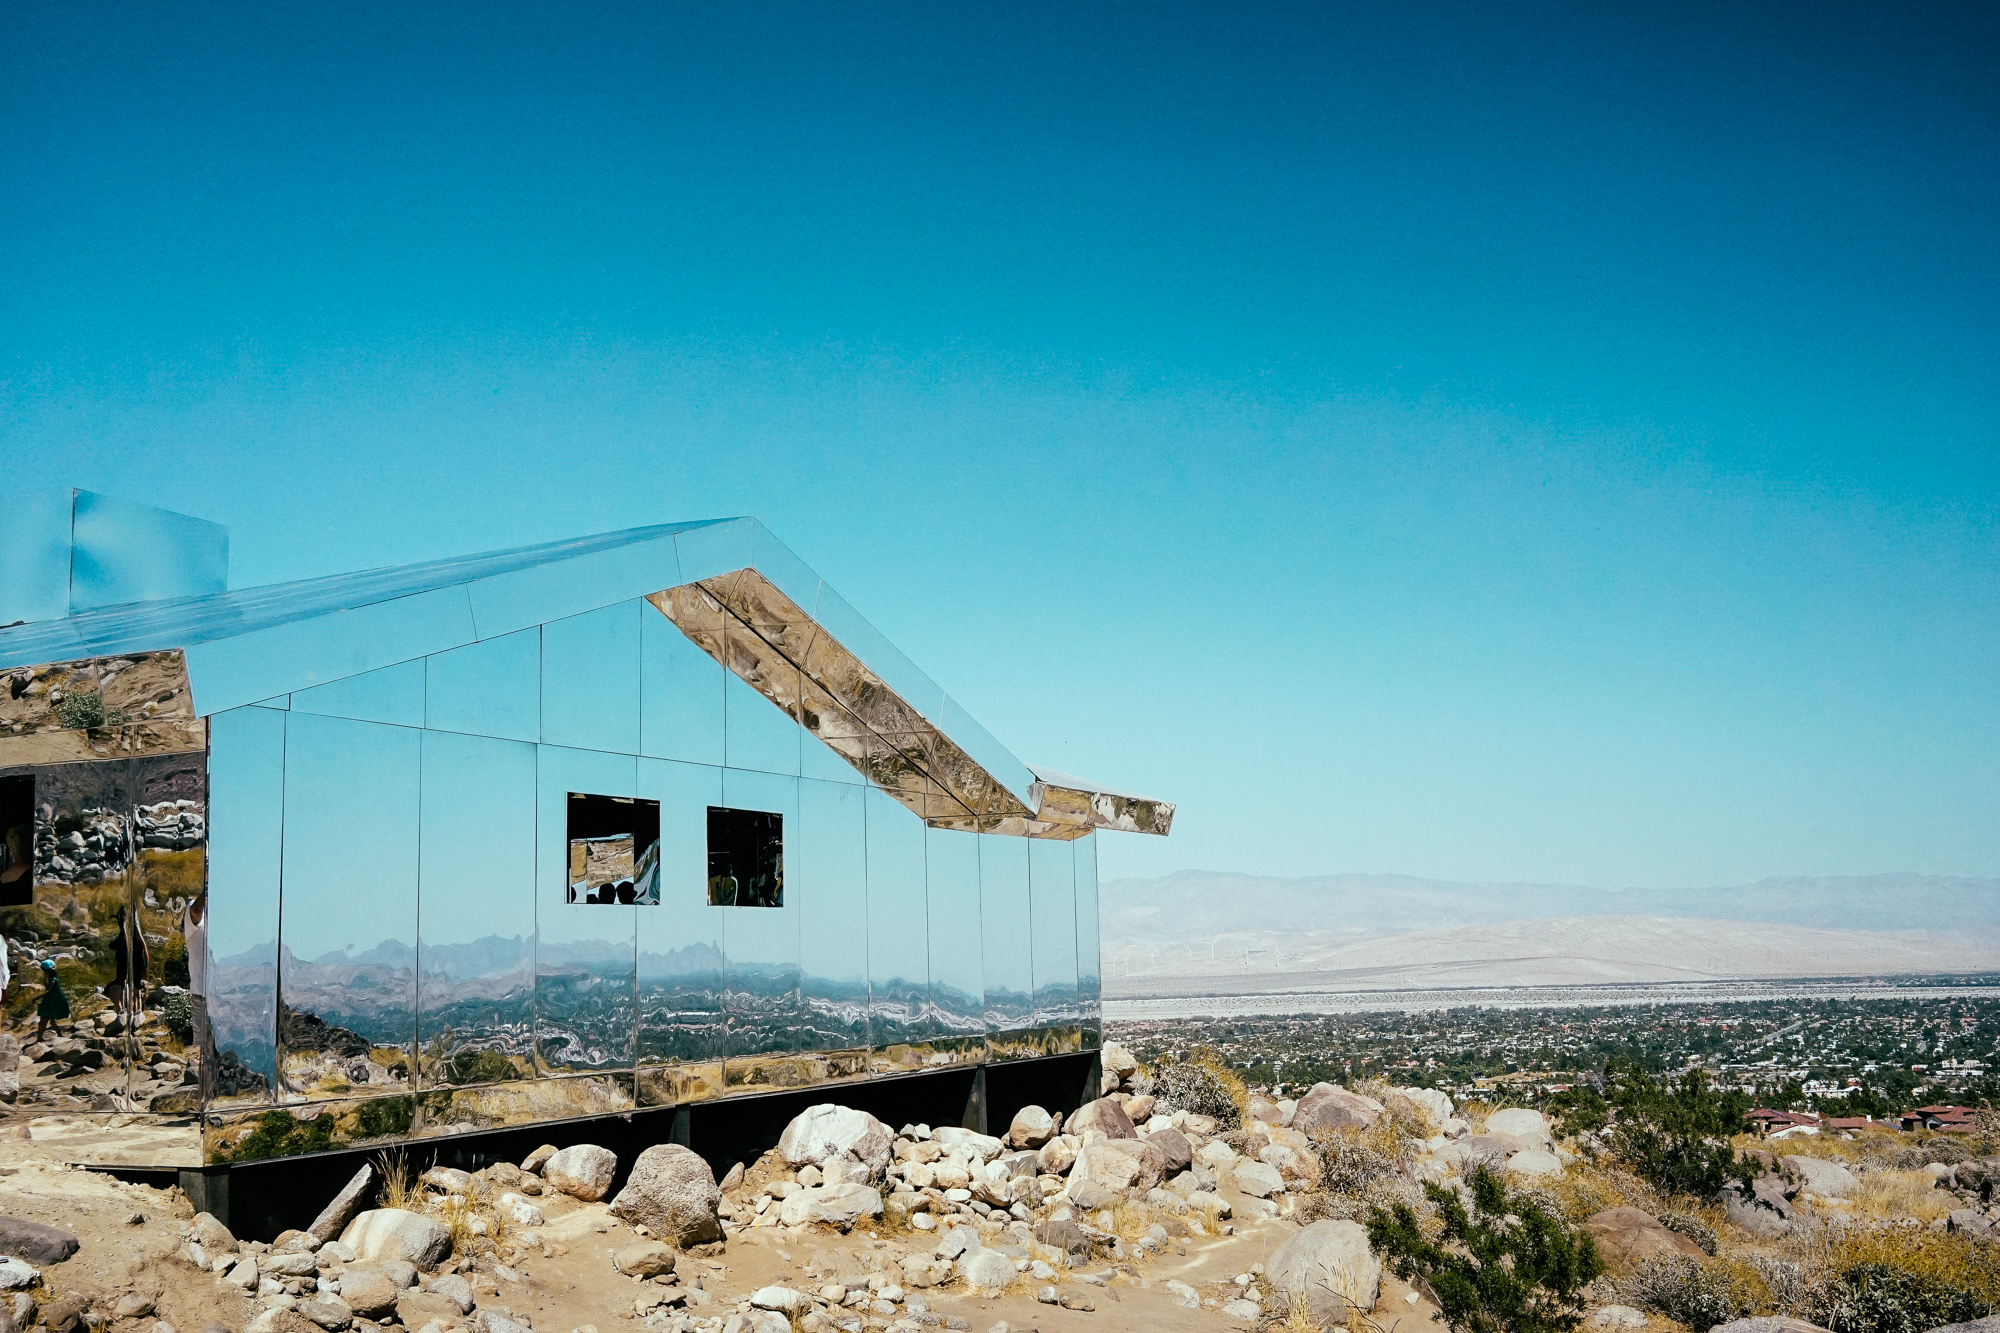 MIRAGE - by Doug Aitken